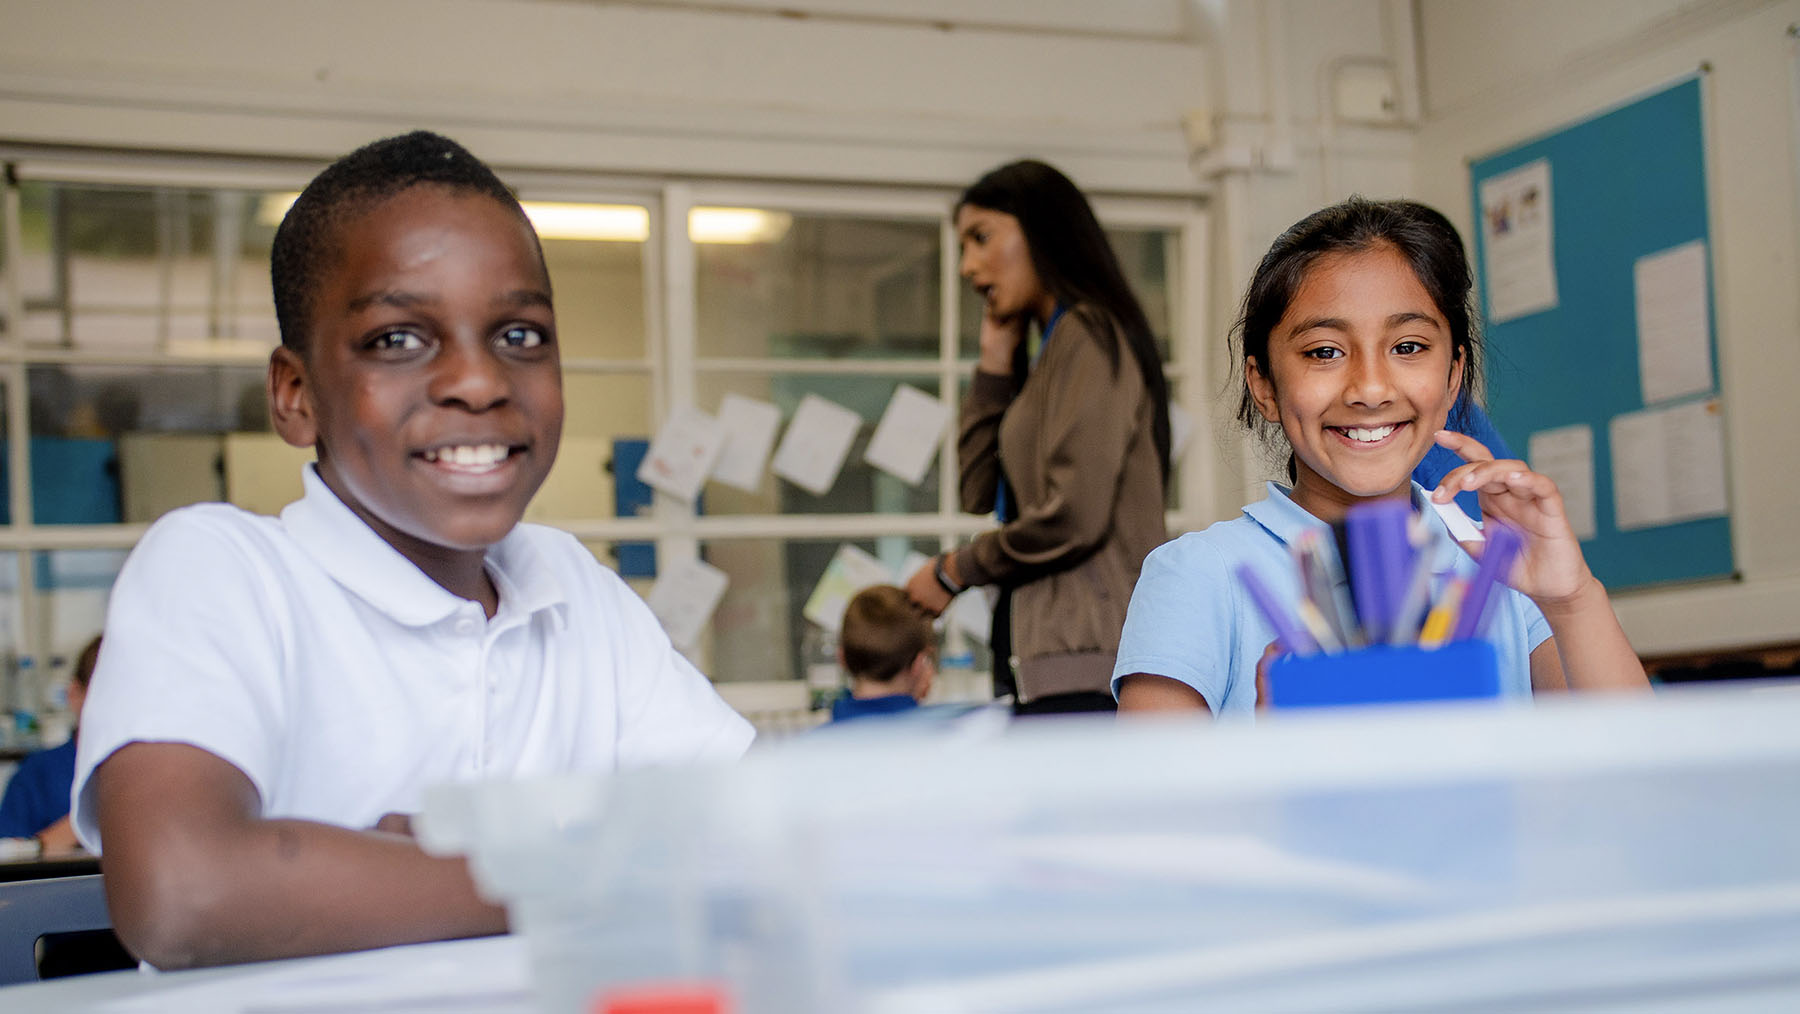 Boy and girl in classroom working at desk and smiling